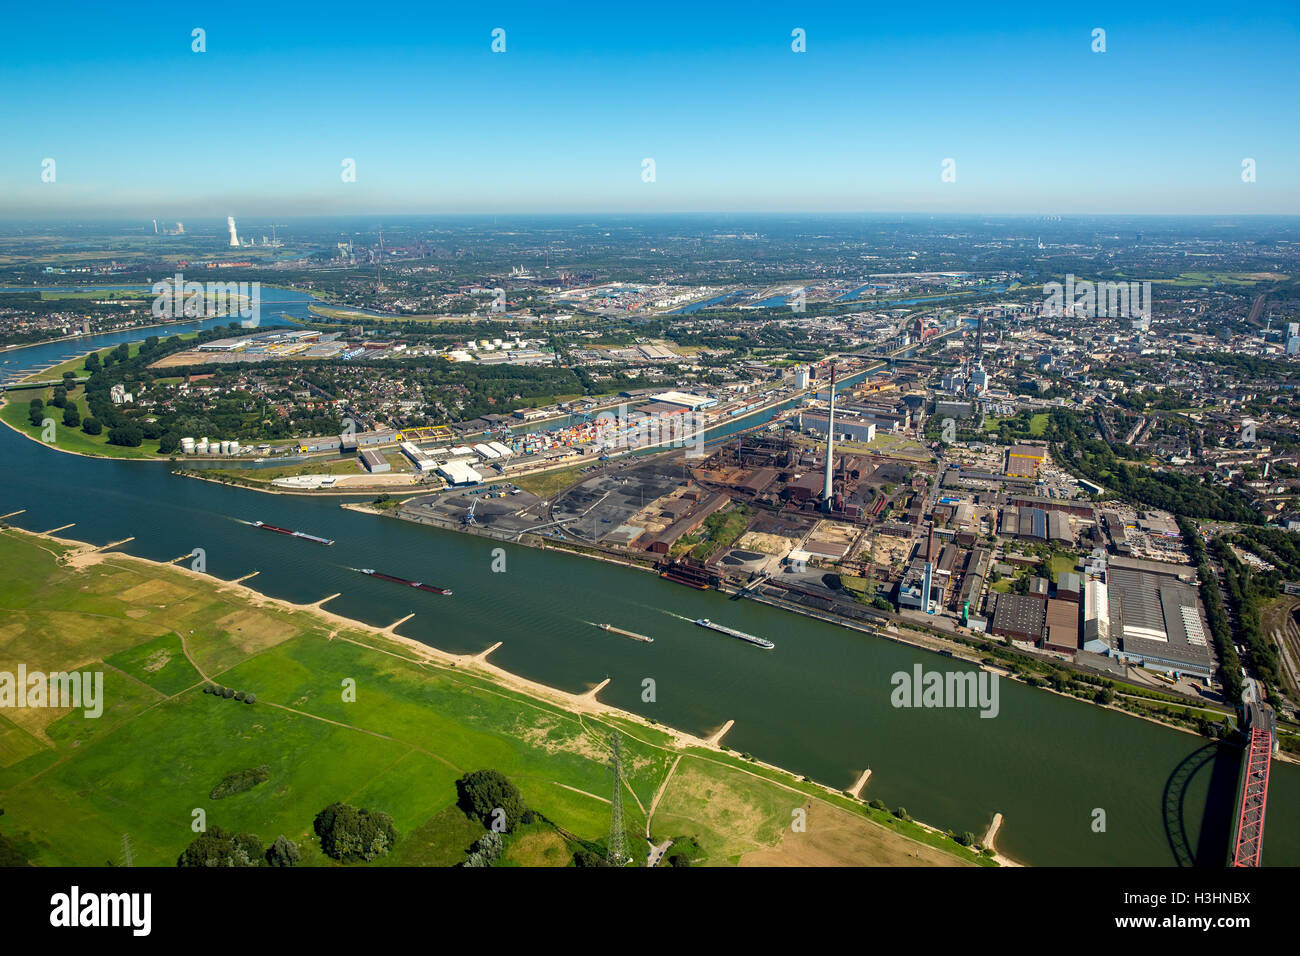 Aerial view, parallel port Duisburg Hochfeld, Duisburg Harbour Company, Rhine, Duisburg, Ruhr area, North Rhine - Stock Image